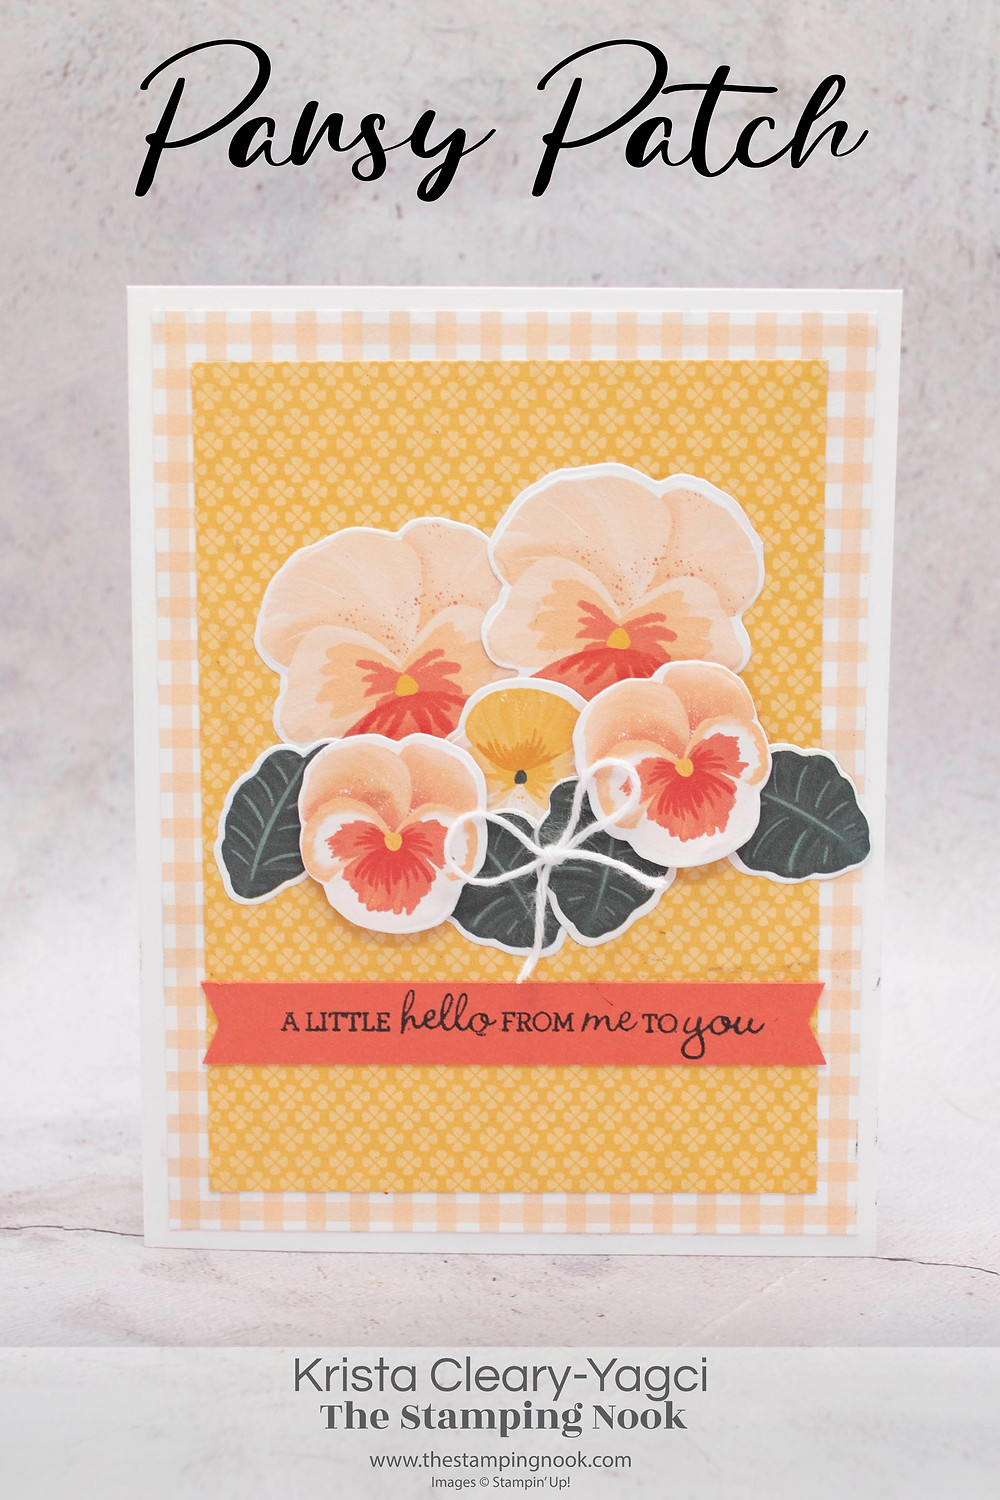 Stampin' Up! Card Ideas - Stampin Up Card Ideas - Pansy Patch Stamp Set - Pansy Patch Card Ideas - Pansy Patch Stampin Up - Stampin Up Pansy Patch  - Stampin Up Cards  - The Stamping Nook - Krista Cleary-Yagci - Stampin' Up! Demonstrator - Stampin Up Pennsylvania - Stampin Up New Jersey